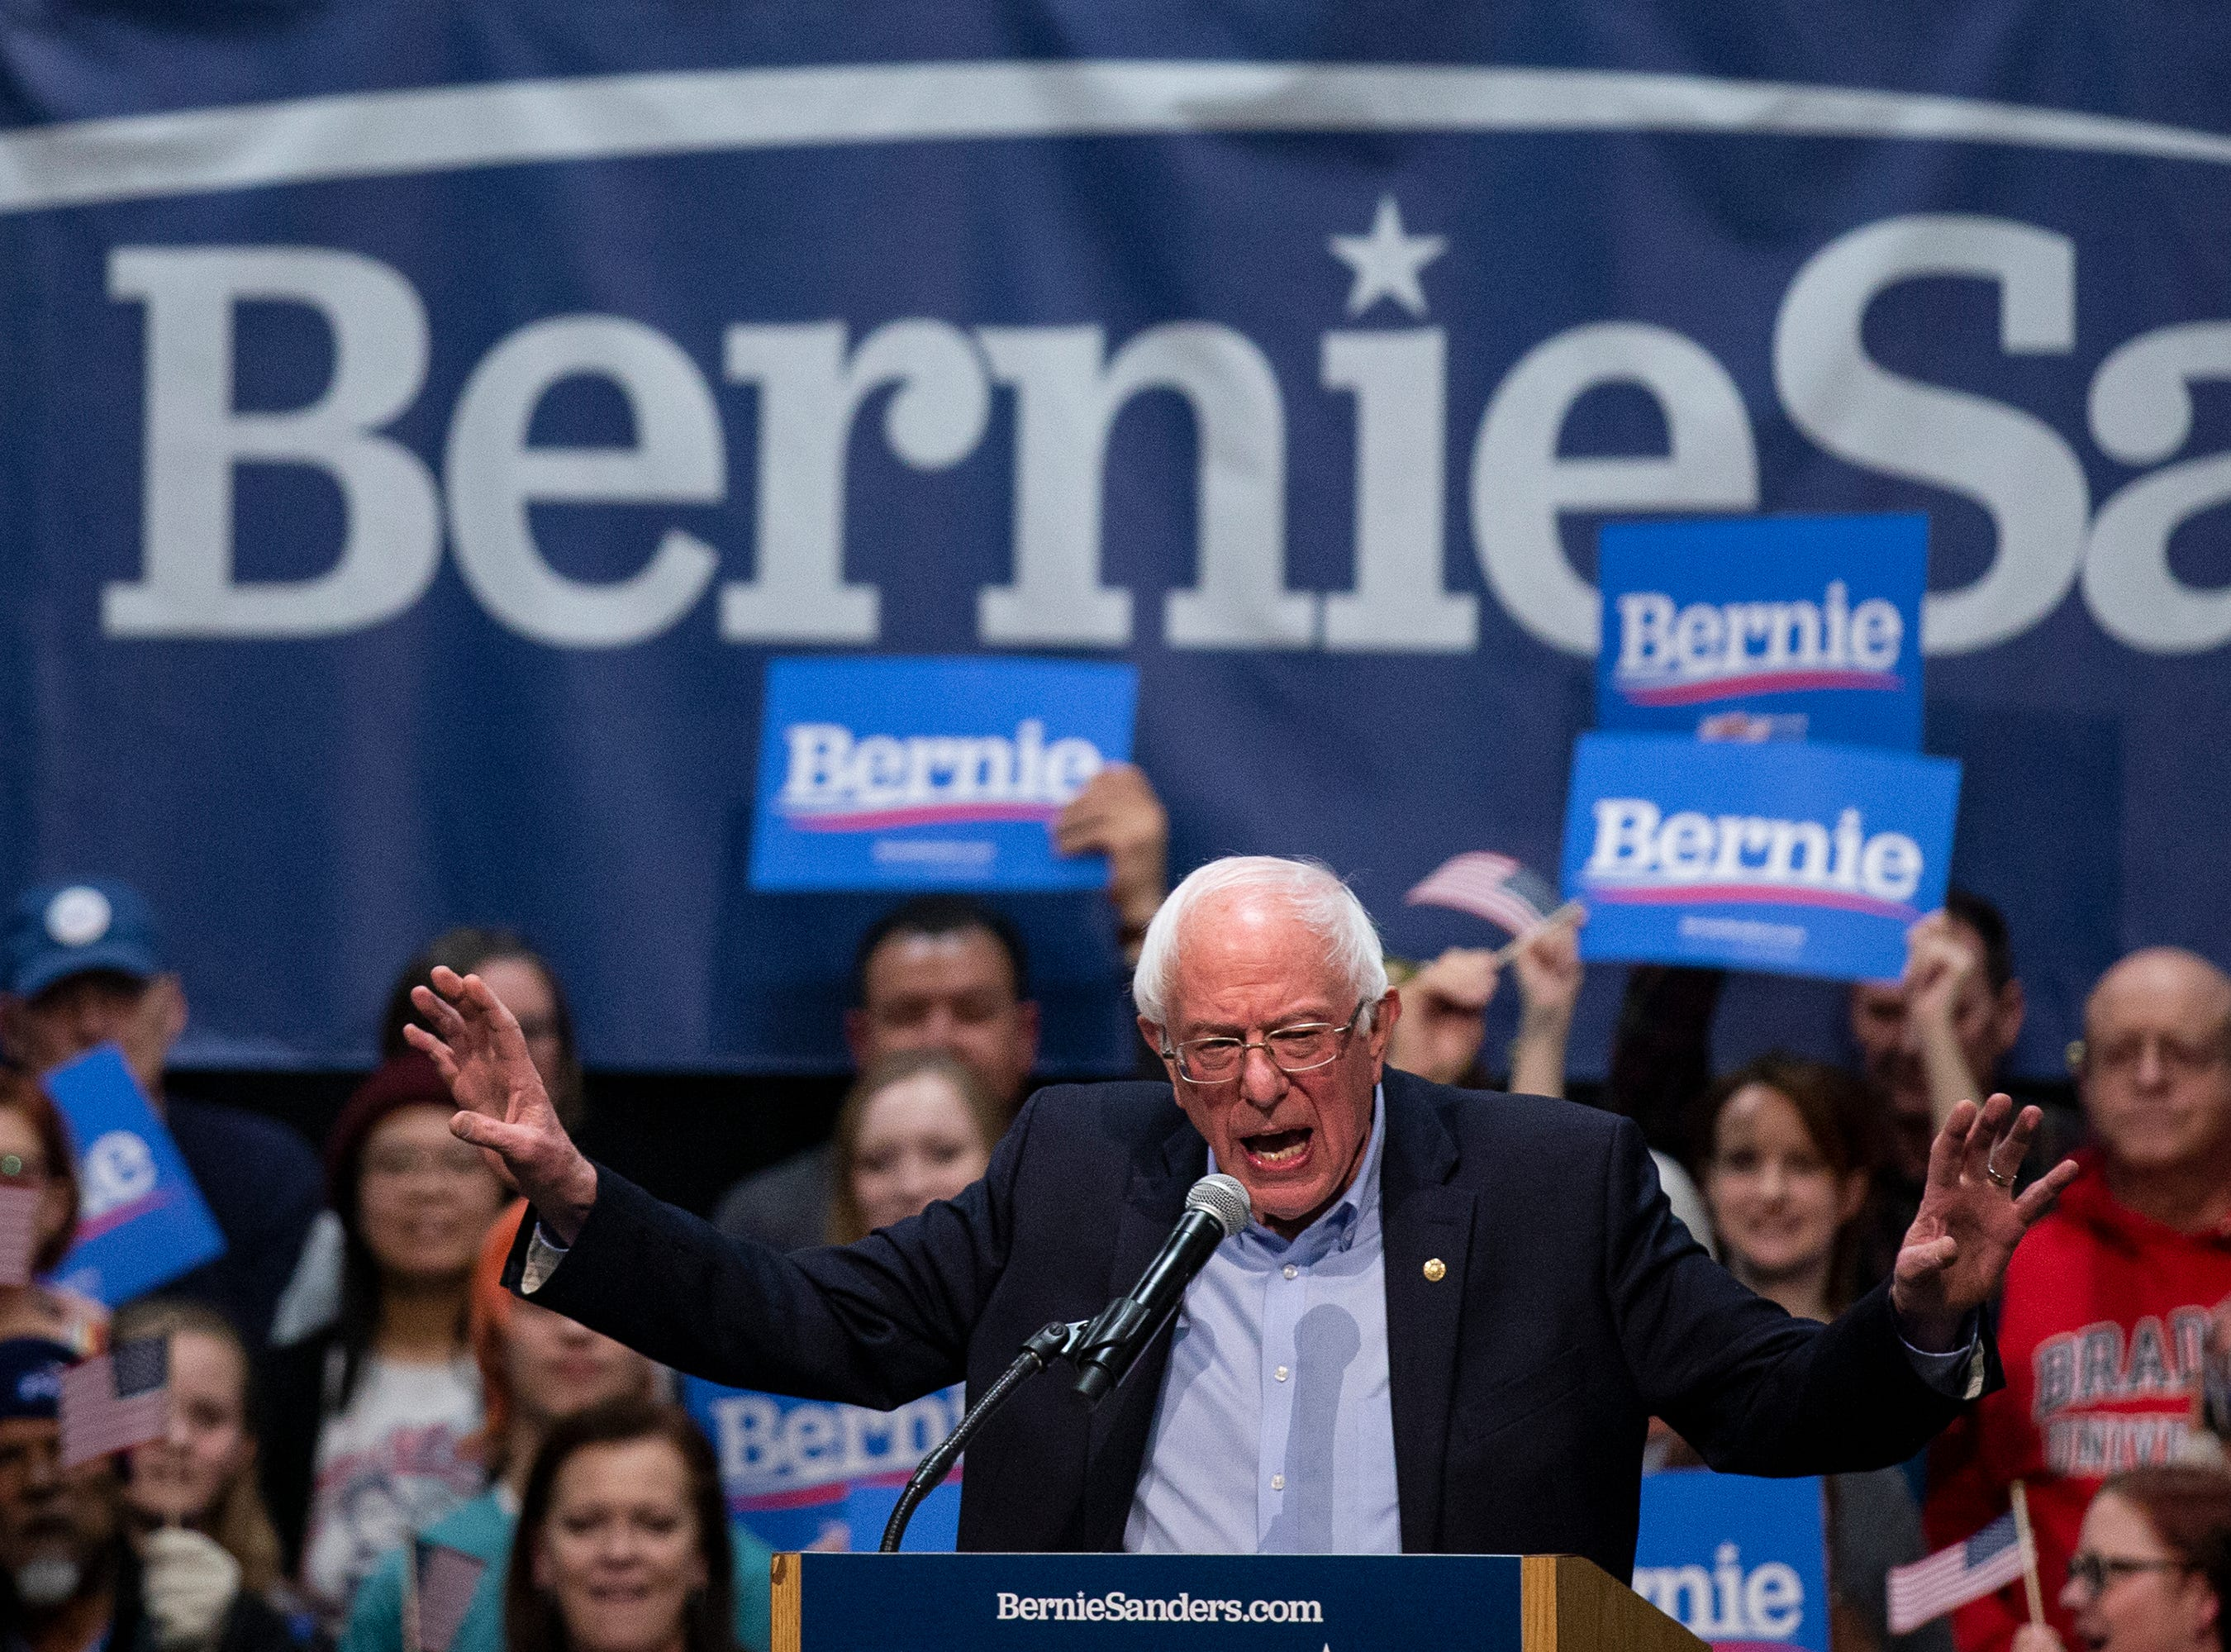 Sen. Bernie Sanders, I-VT, speaks to a crowd of people gathered in the Mid-America Center on his first trip to Iowa after announcing he'll run for president for the second time, on Thursday, March 7, 2019, in Council Bluffs.